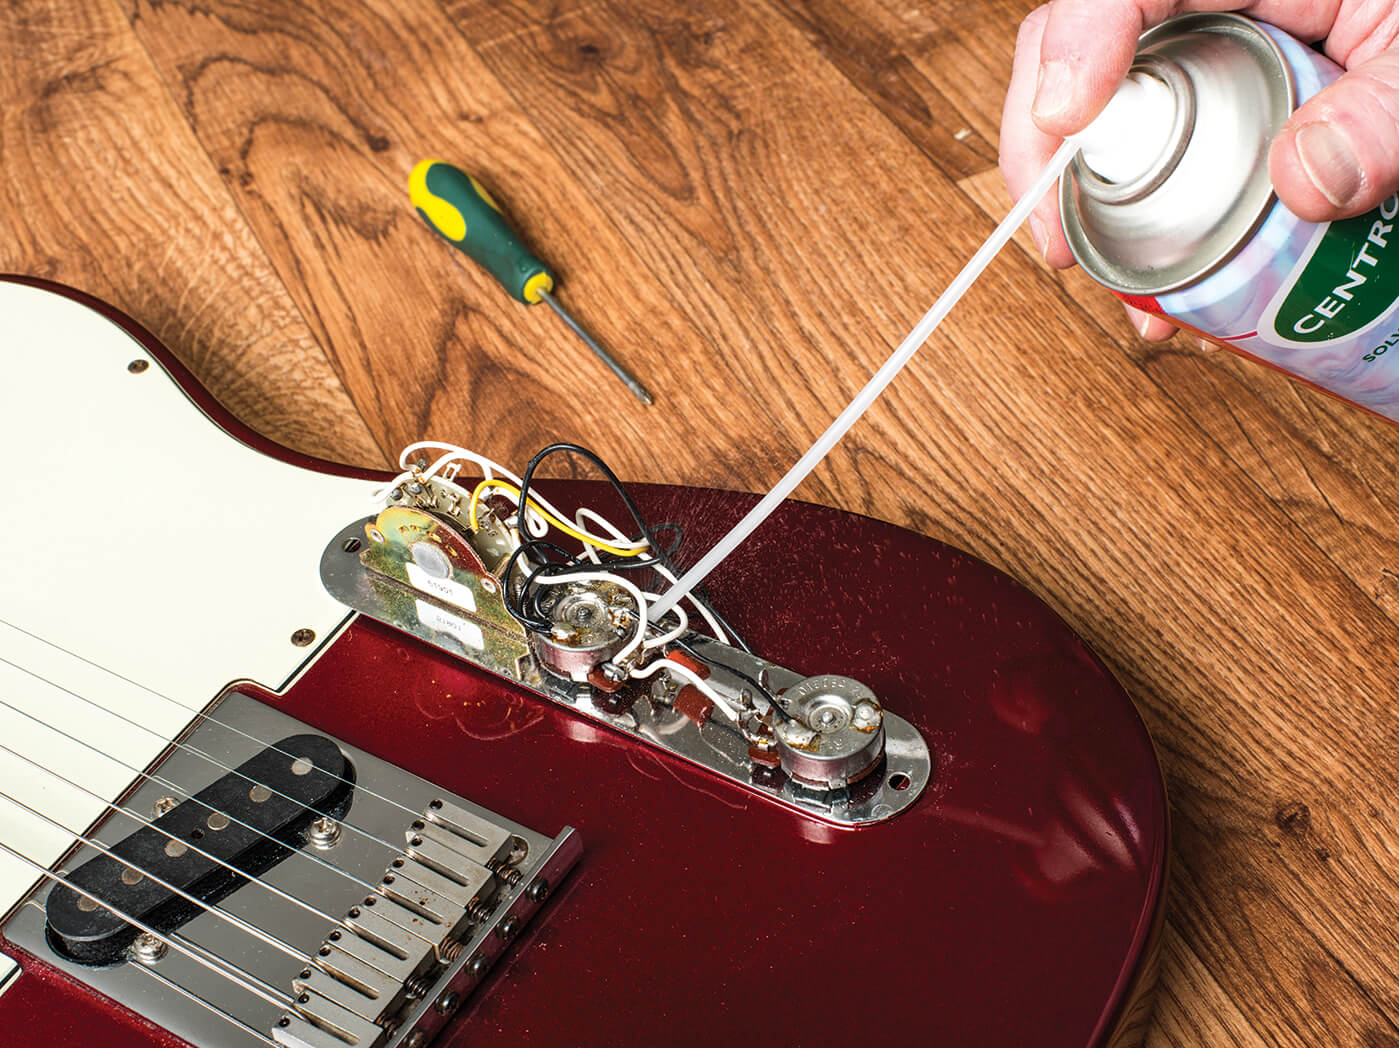 DIY Potentiometer contact cleaner